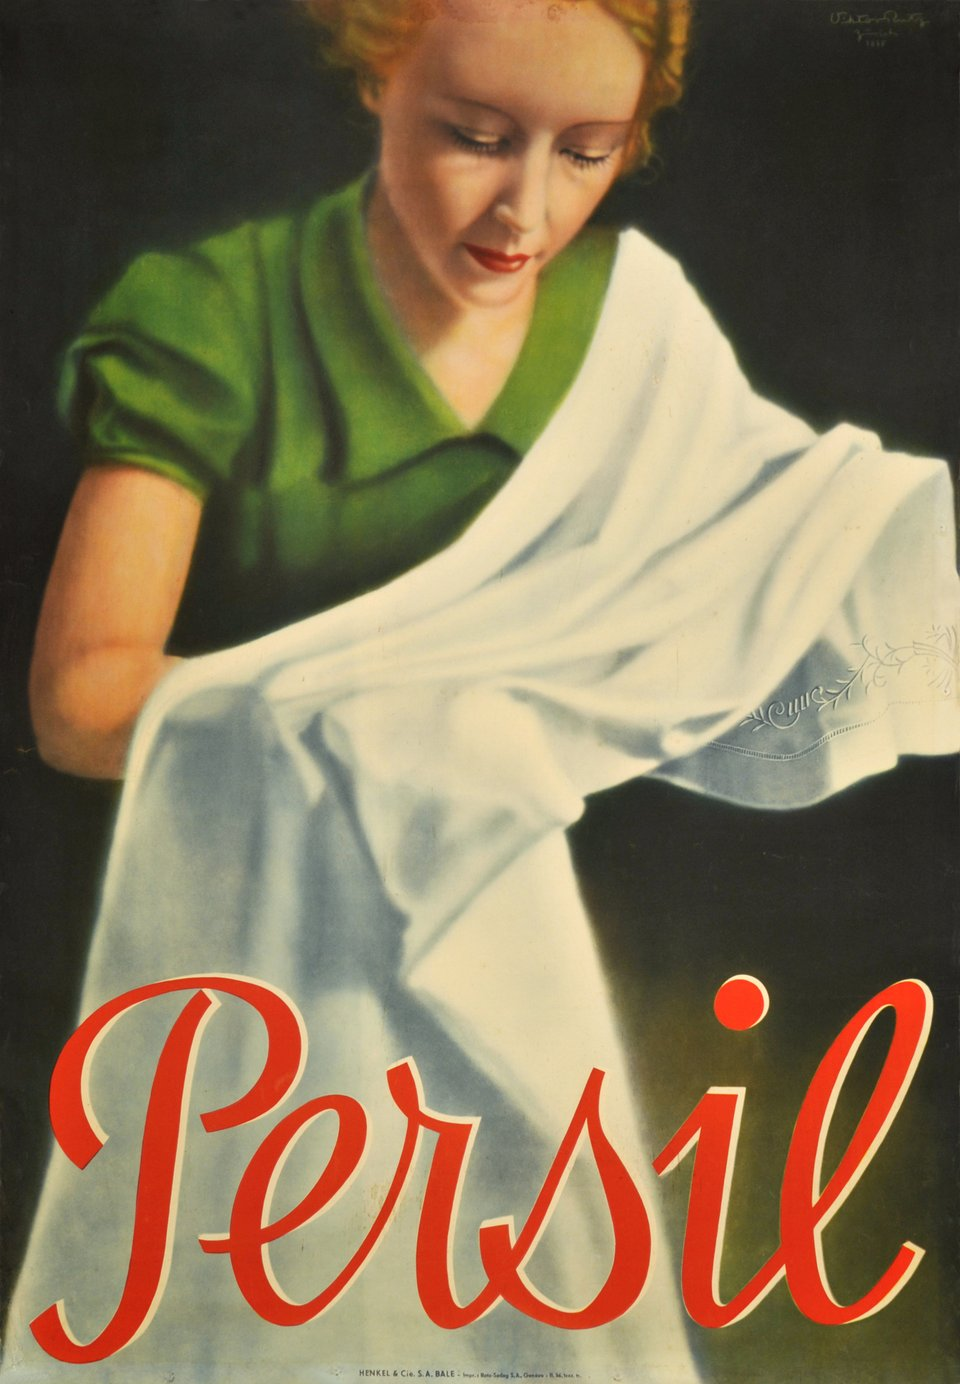 Persil – Affiche ancienne – Victor RUTZ – 1935